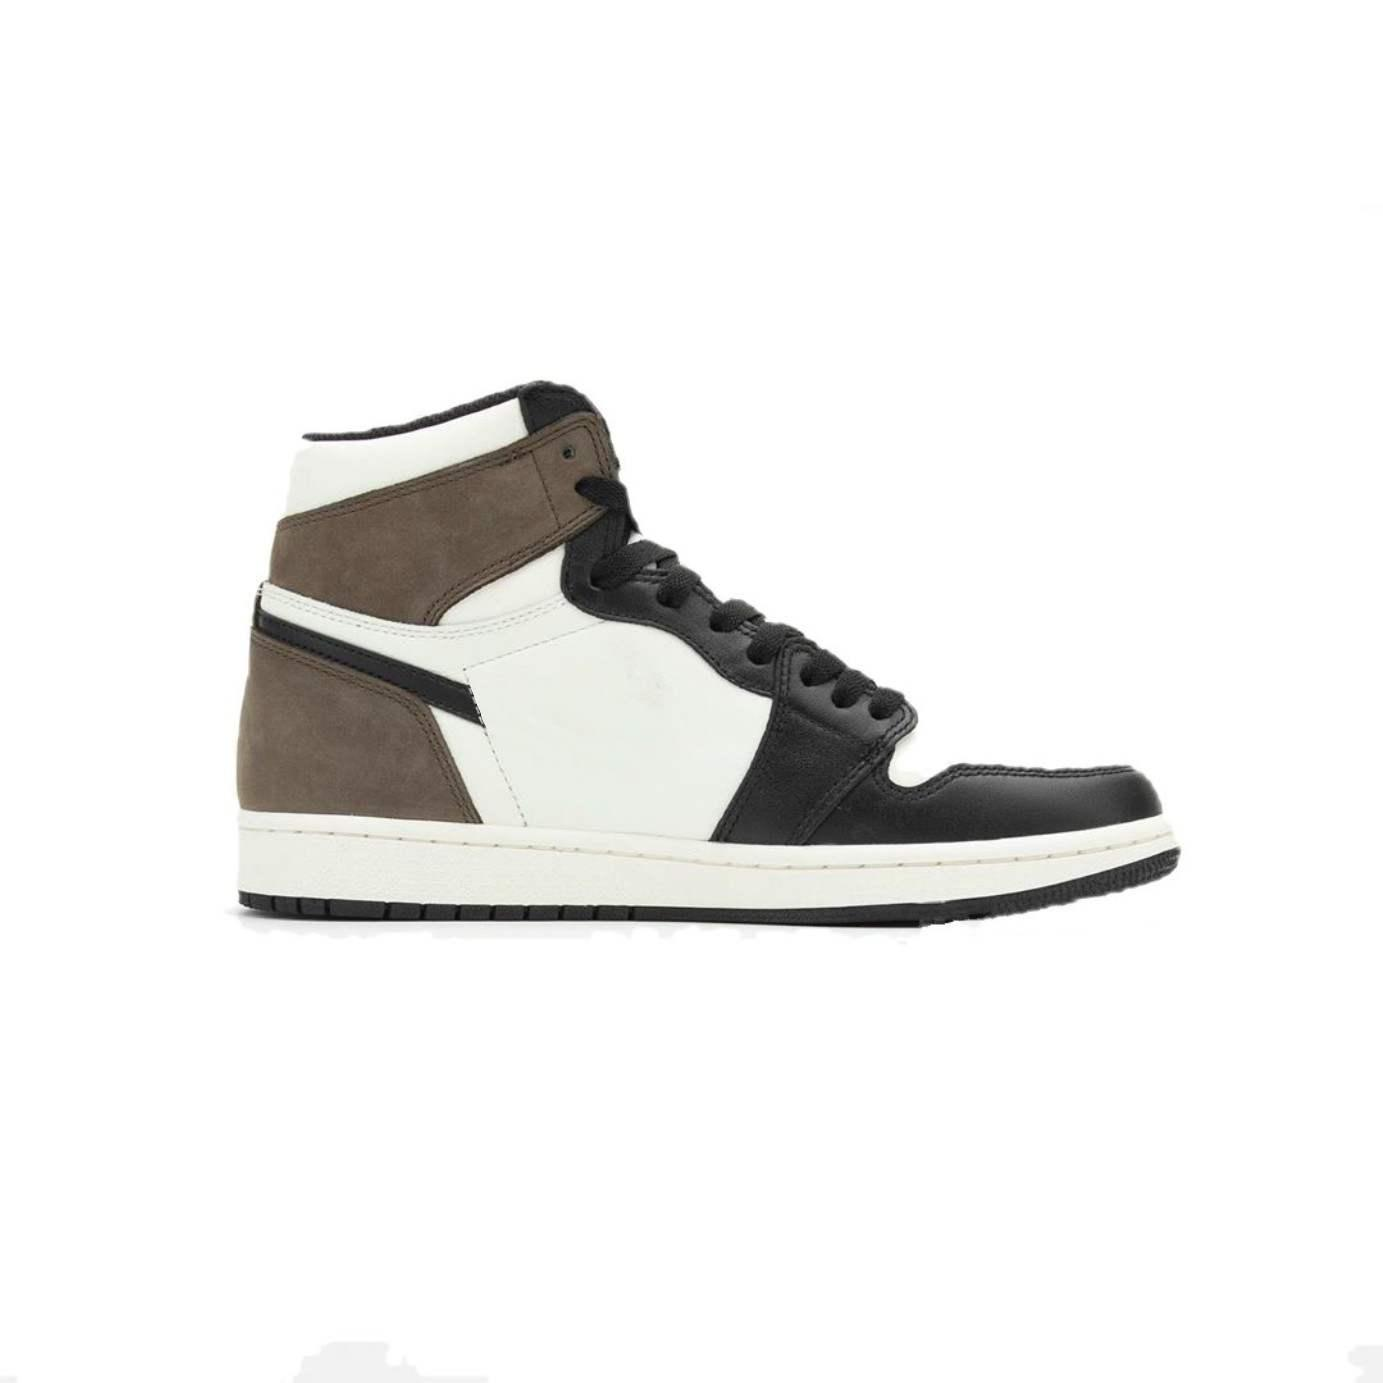 1 Dark Mocha 1s basketball shoes Genuine Leather TOP Factory Version mens trainer 2020 New Sneakers with Box